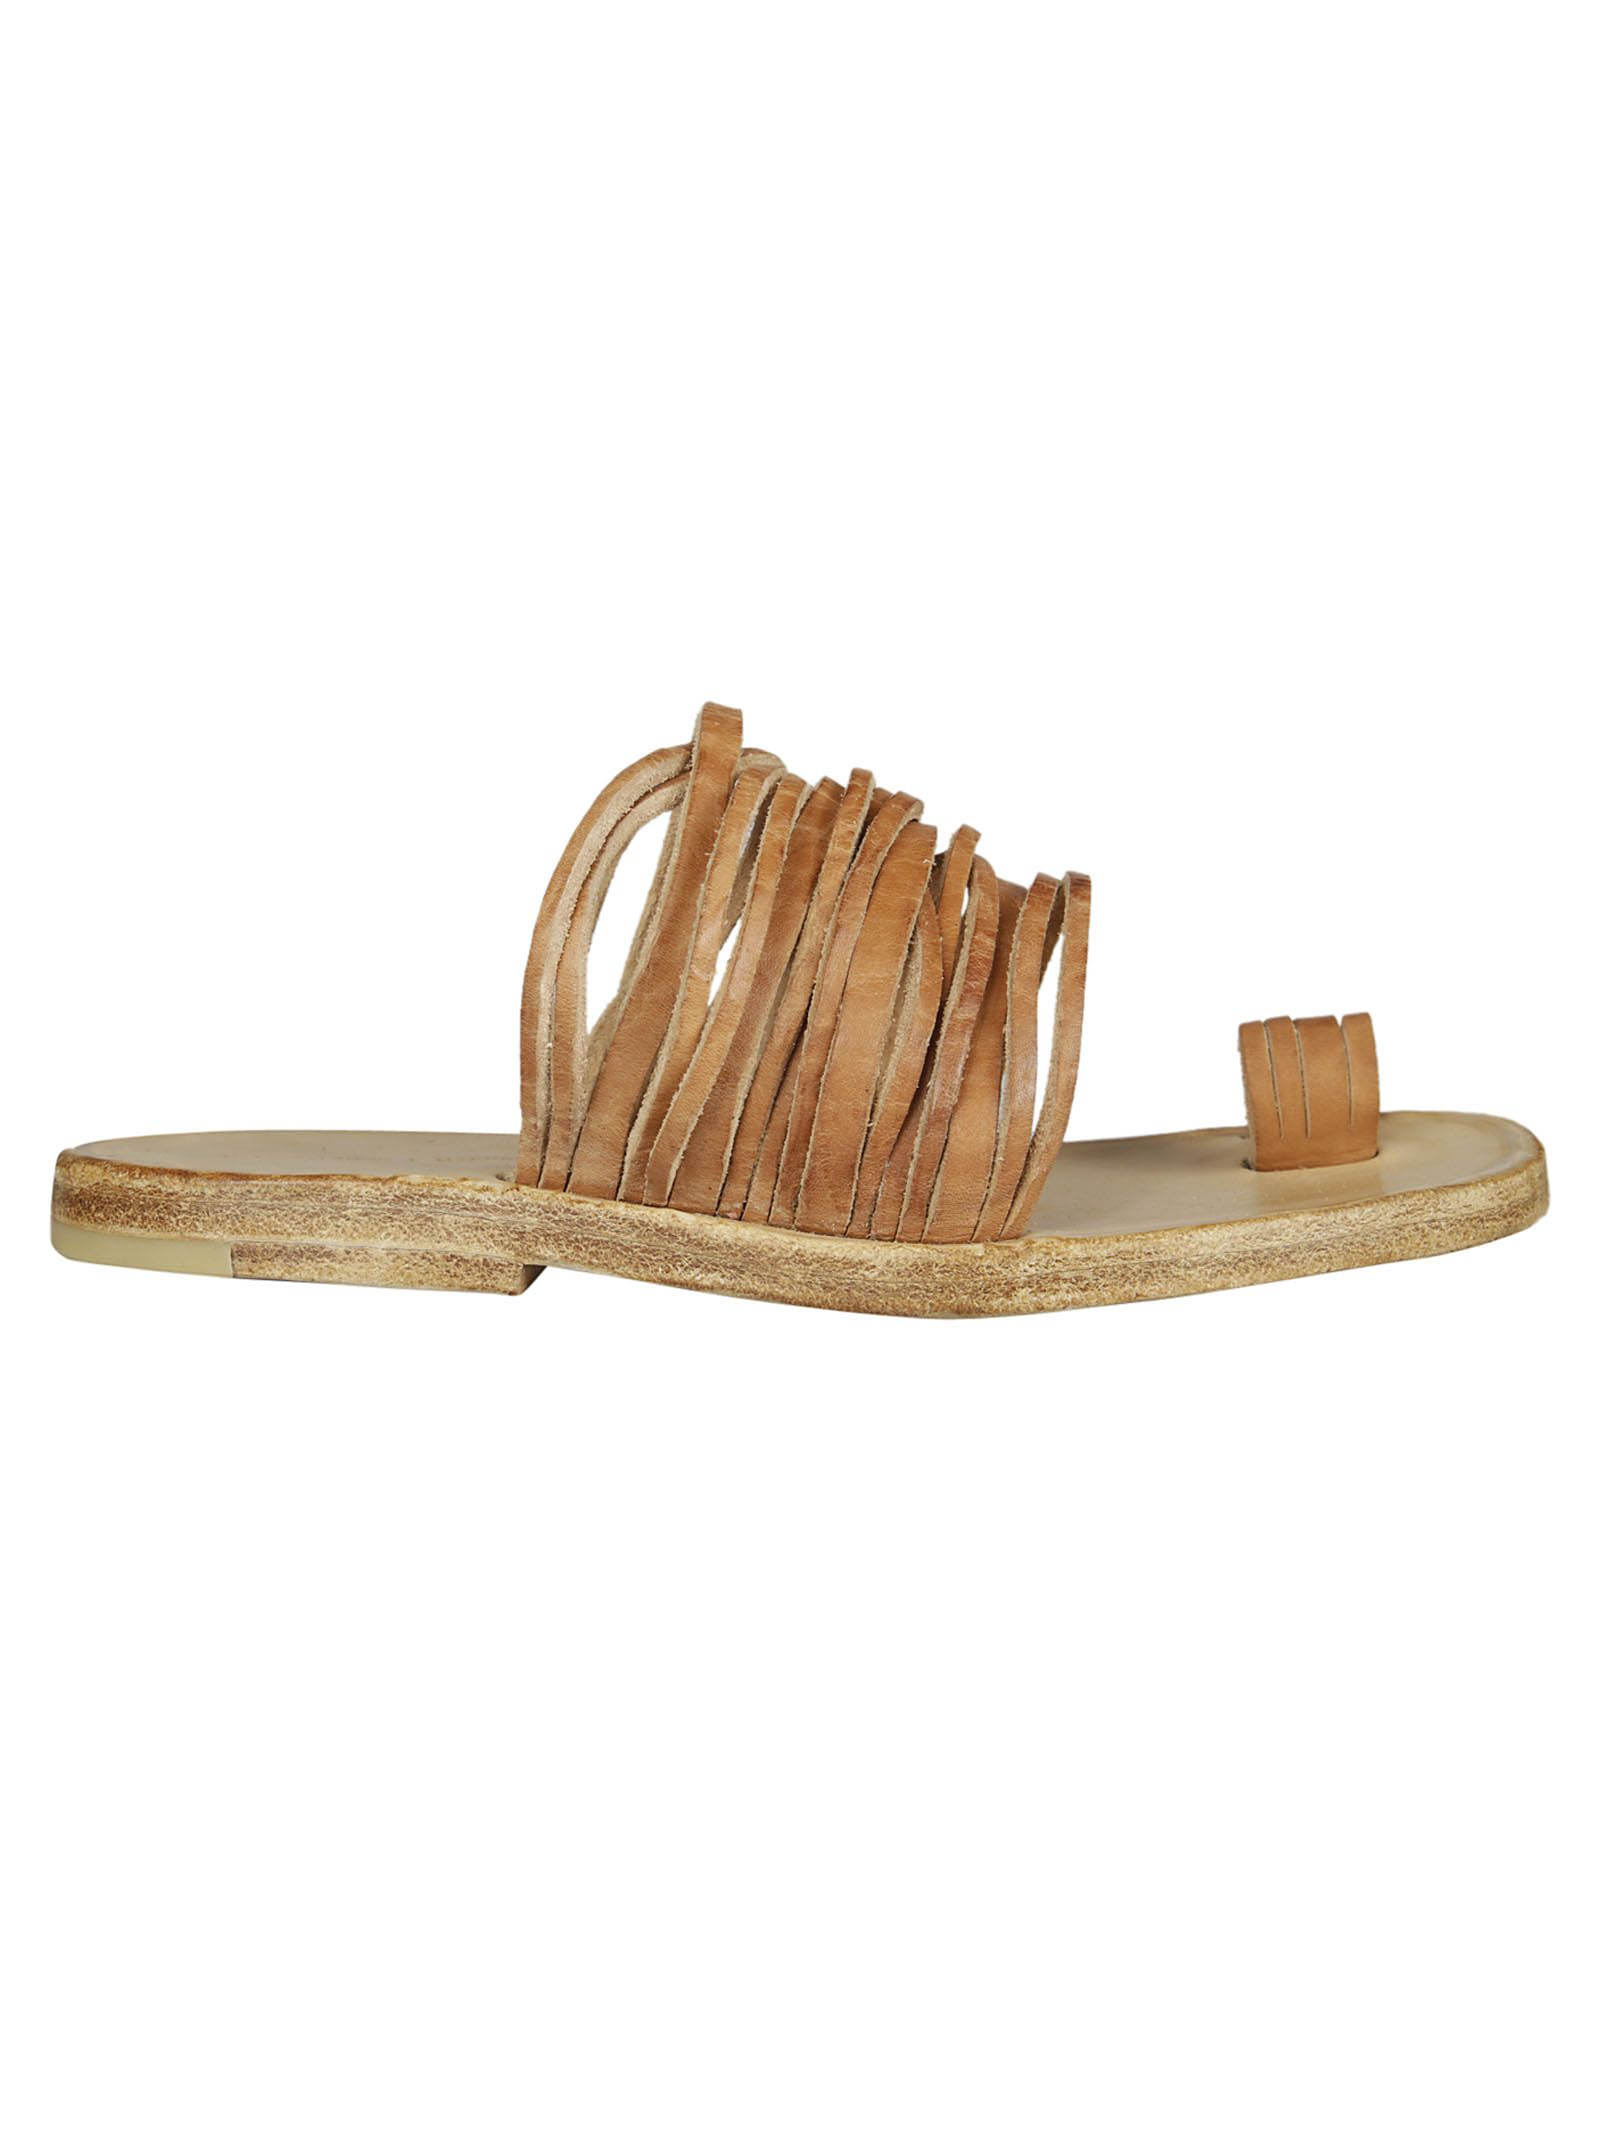 DIMISSIANOS & MILLER Daktylo Strappy Sandal Outlet Looking For High Quality For Sale dr3pC9qkj